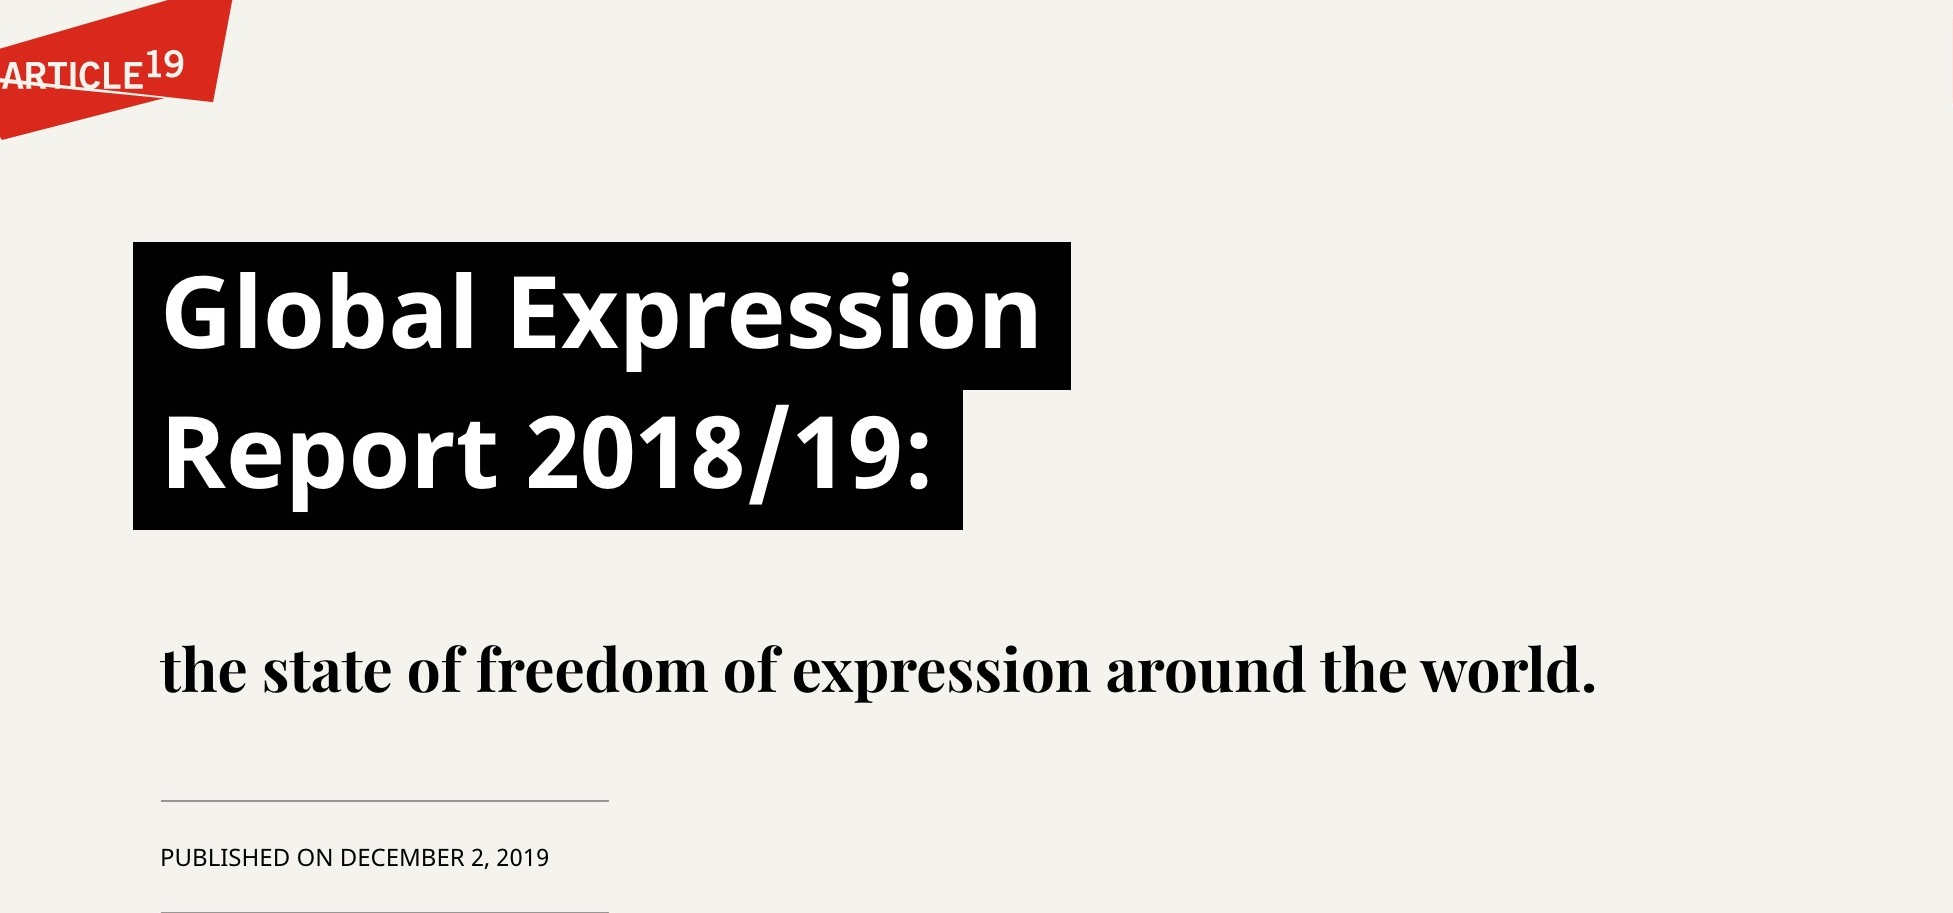 Freedom of Expression in Catastrophic, Decade Long Low Across the World